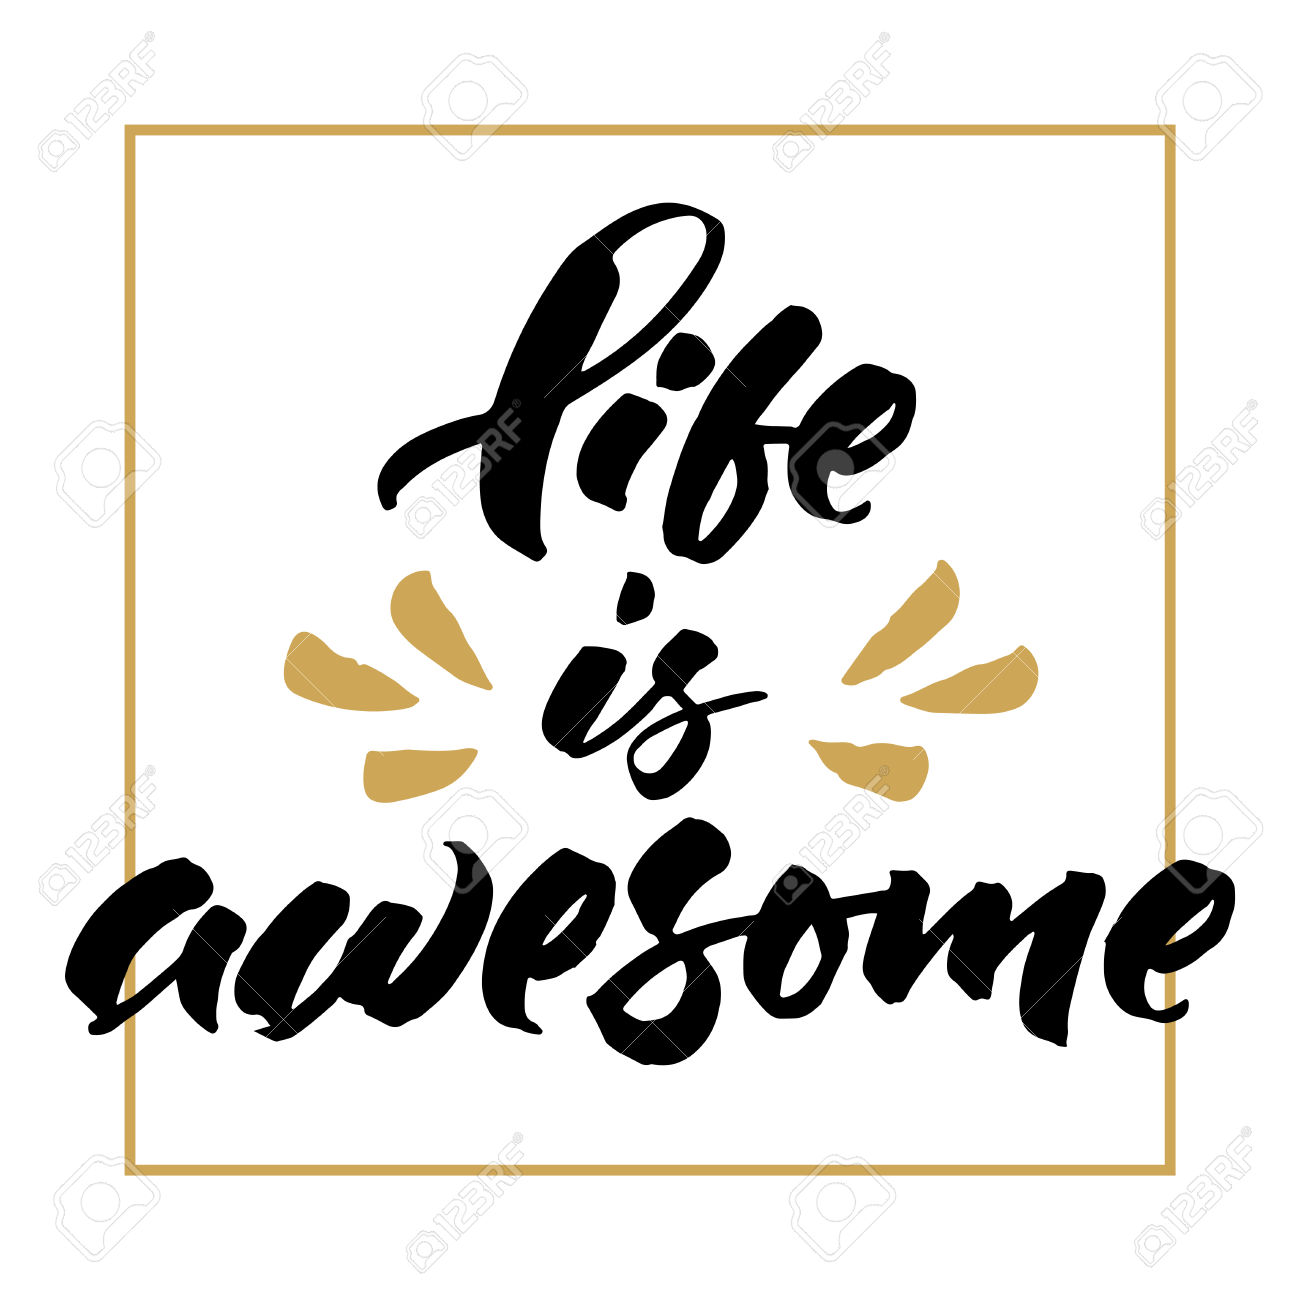 Inspirational Life Phrase 'Life Is Awesome'. Hand Brush Lettering.